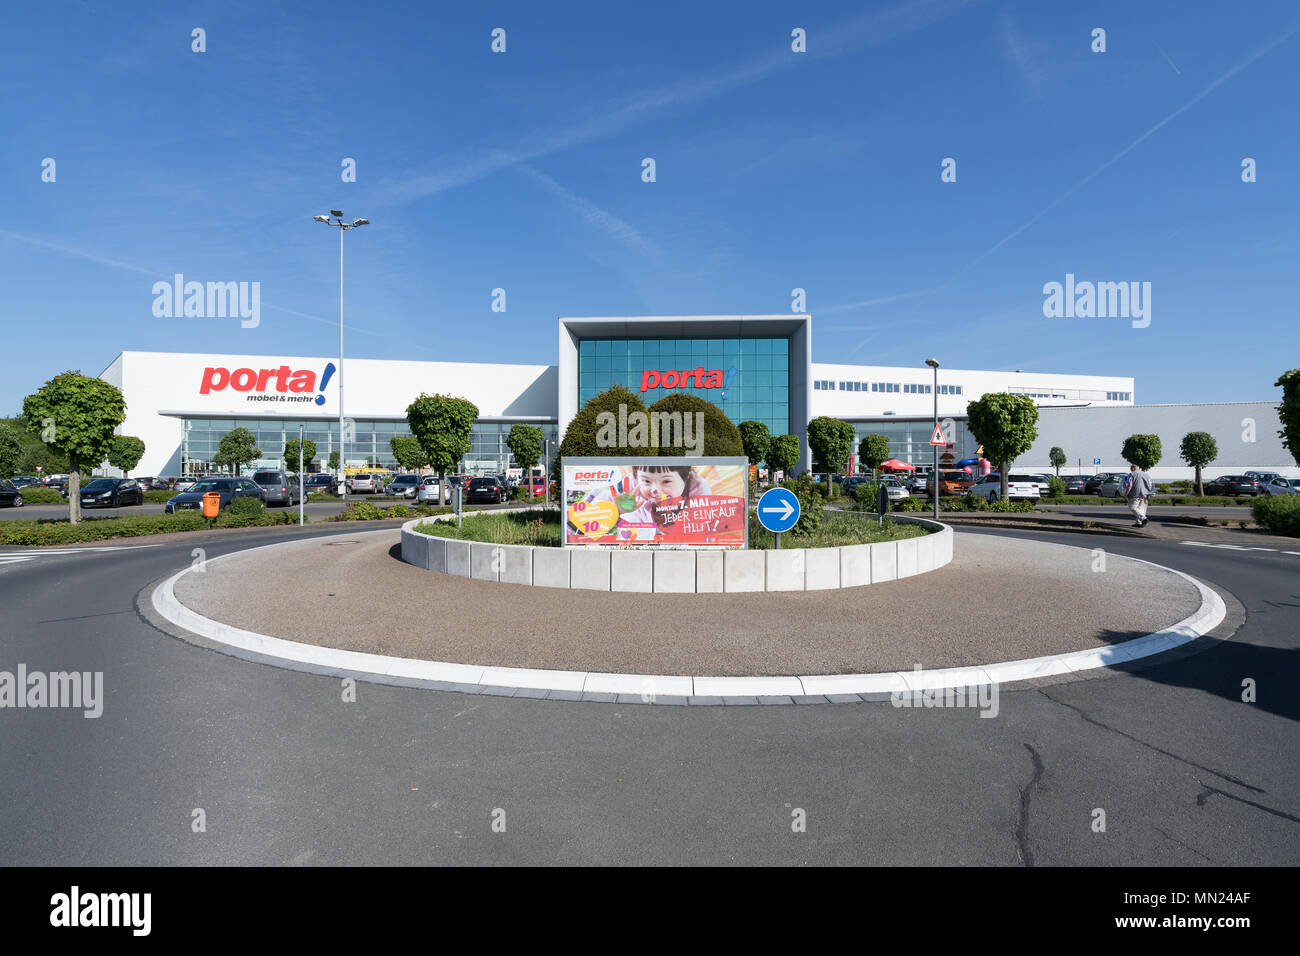 Porta Furniture Store In Cologne Founded In 1965 Porta Has Become One The Largest Furniture Retailer In Germany Stock Photo Alamy